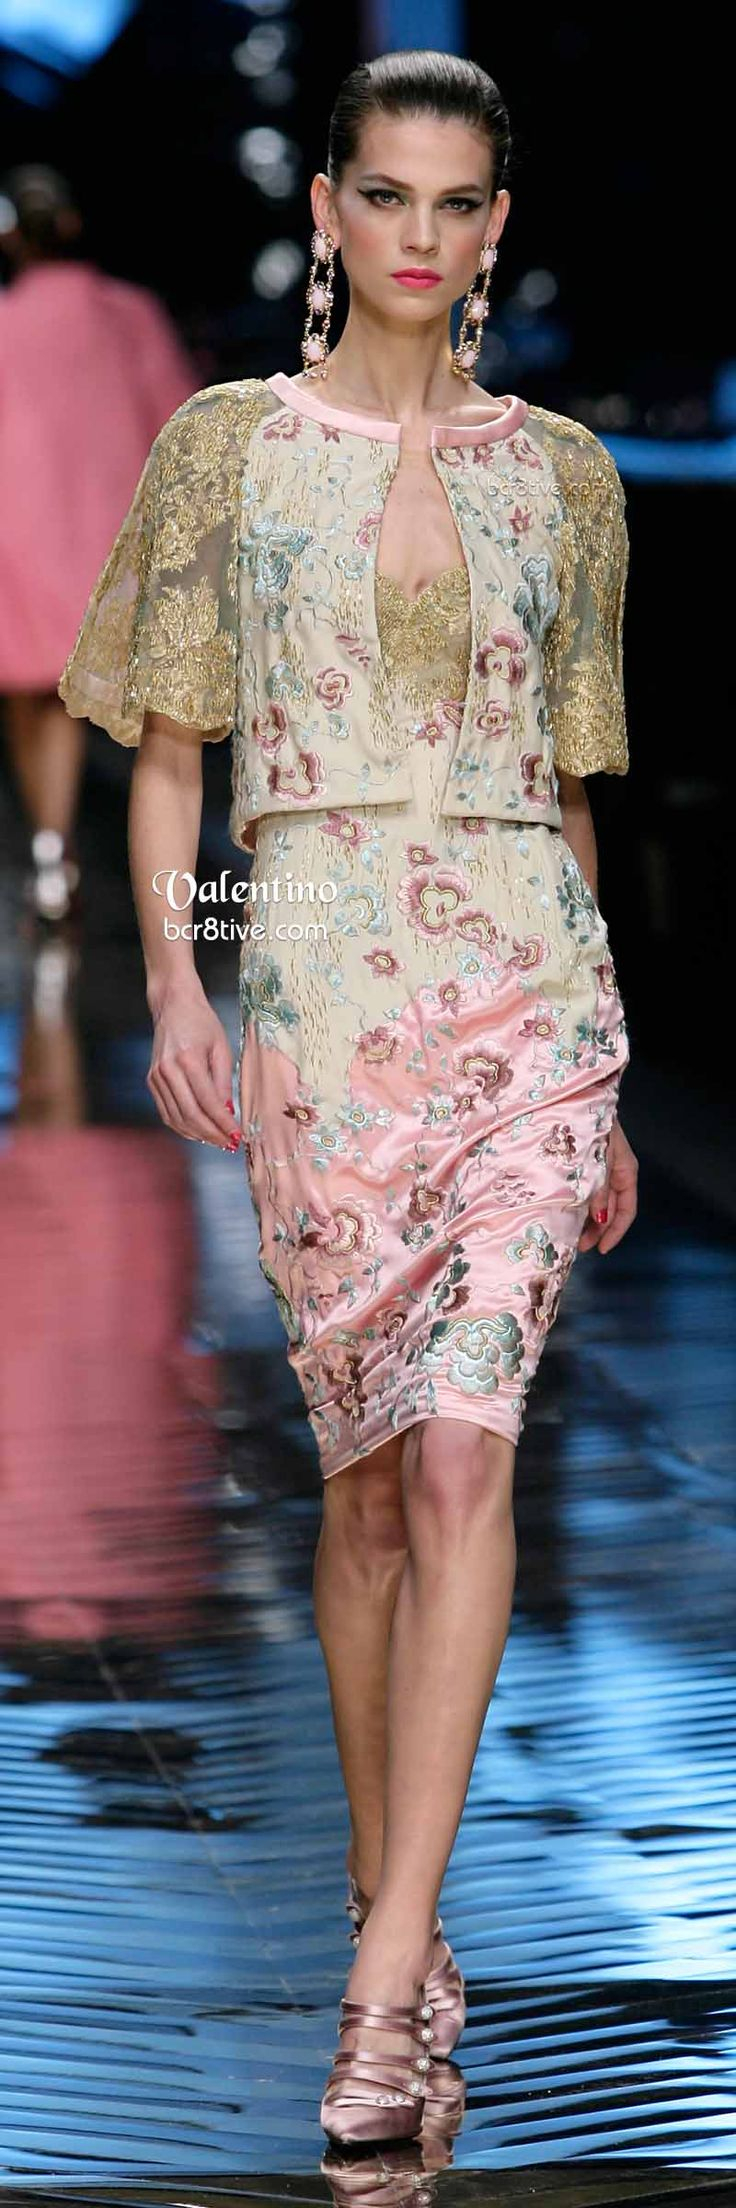 Floral Valentino Dress